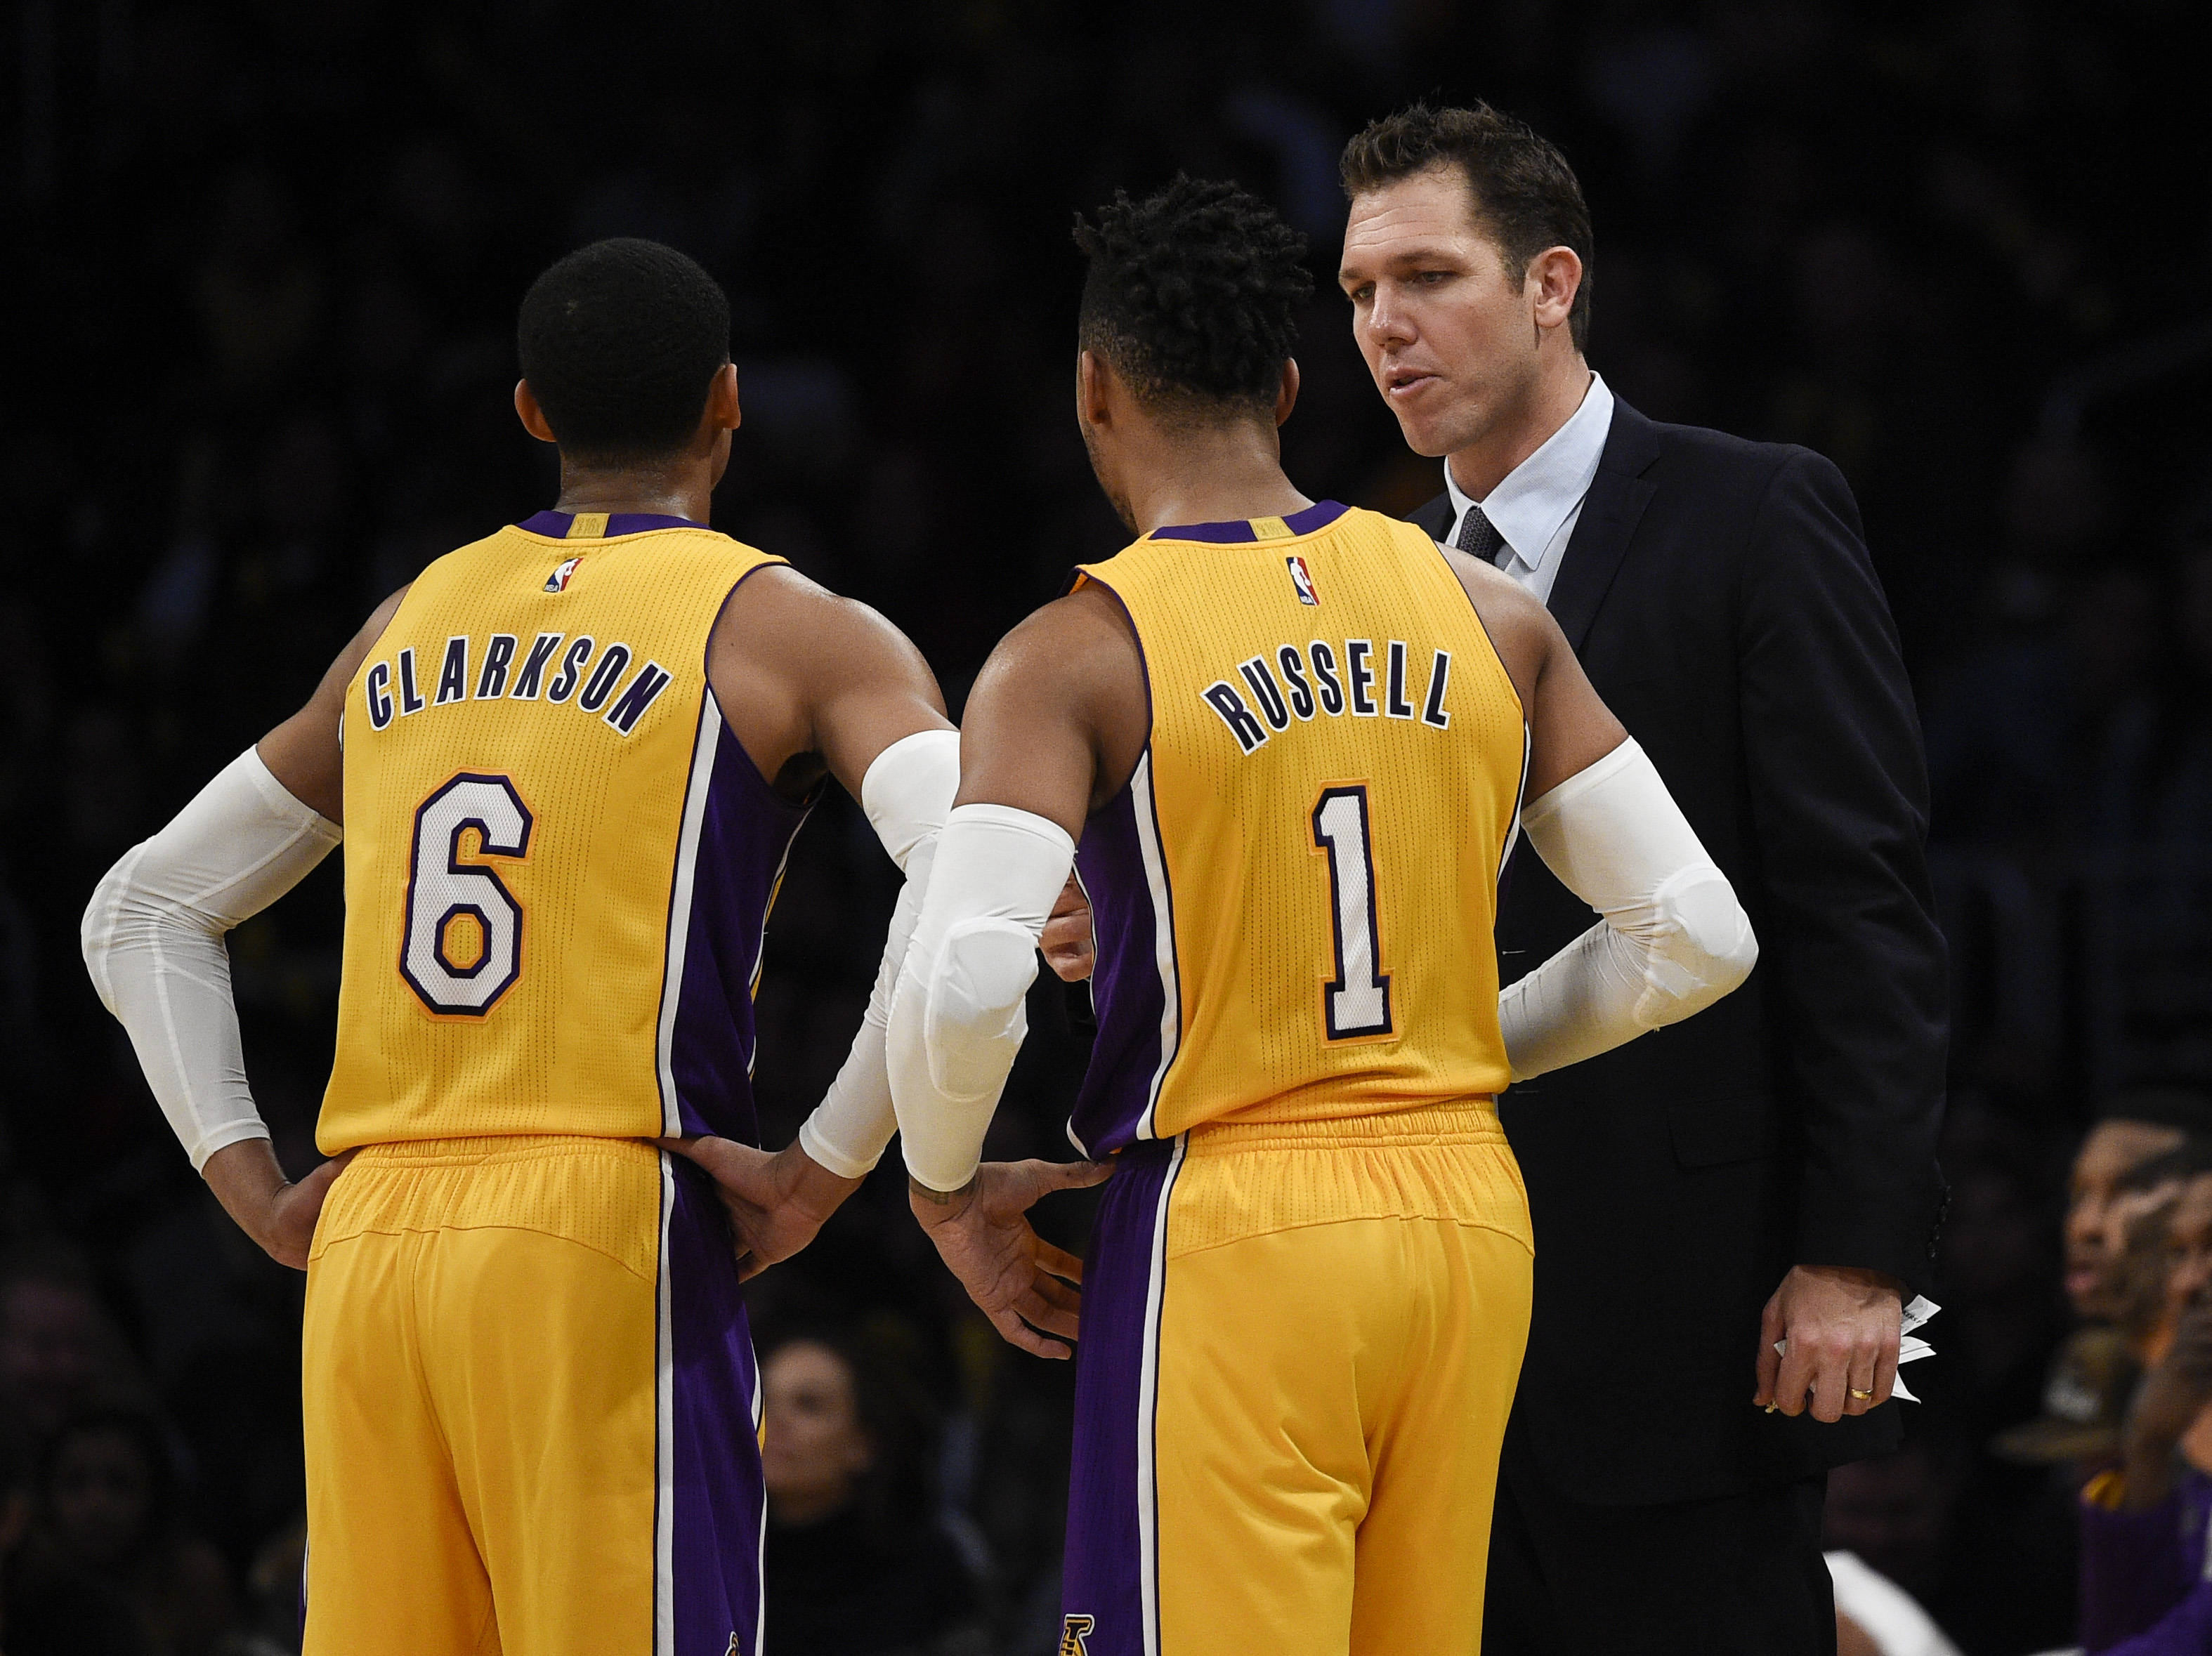 Jan 10, 2017; Los Angeles, CA, USA; Los Angeles Lakers head coach Luke Walton (right) talks with guard D'Angelo Russell (1) and guard Jordan Clarkson (6) during the fourth quarter against the Portland Trail Blazers at Staples Center. The Portland Trail Blazers won 108-87. Mandatory Credit: Kelvin Kuo-USA TODAY Sports